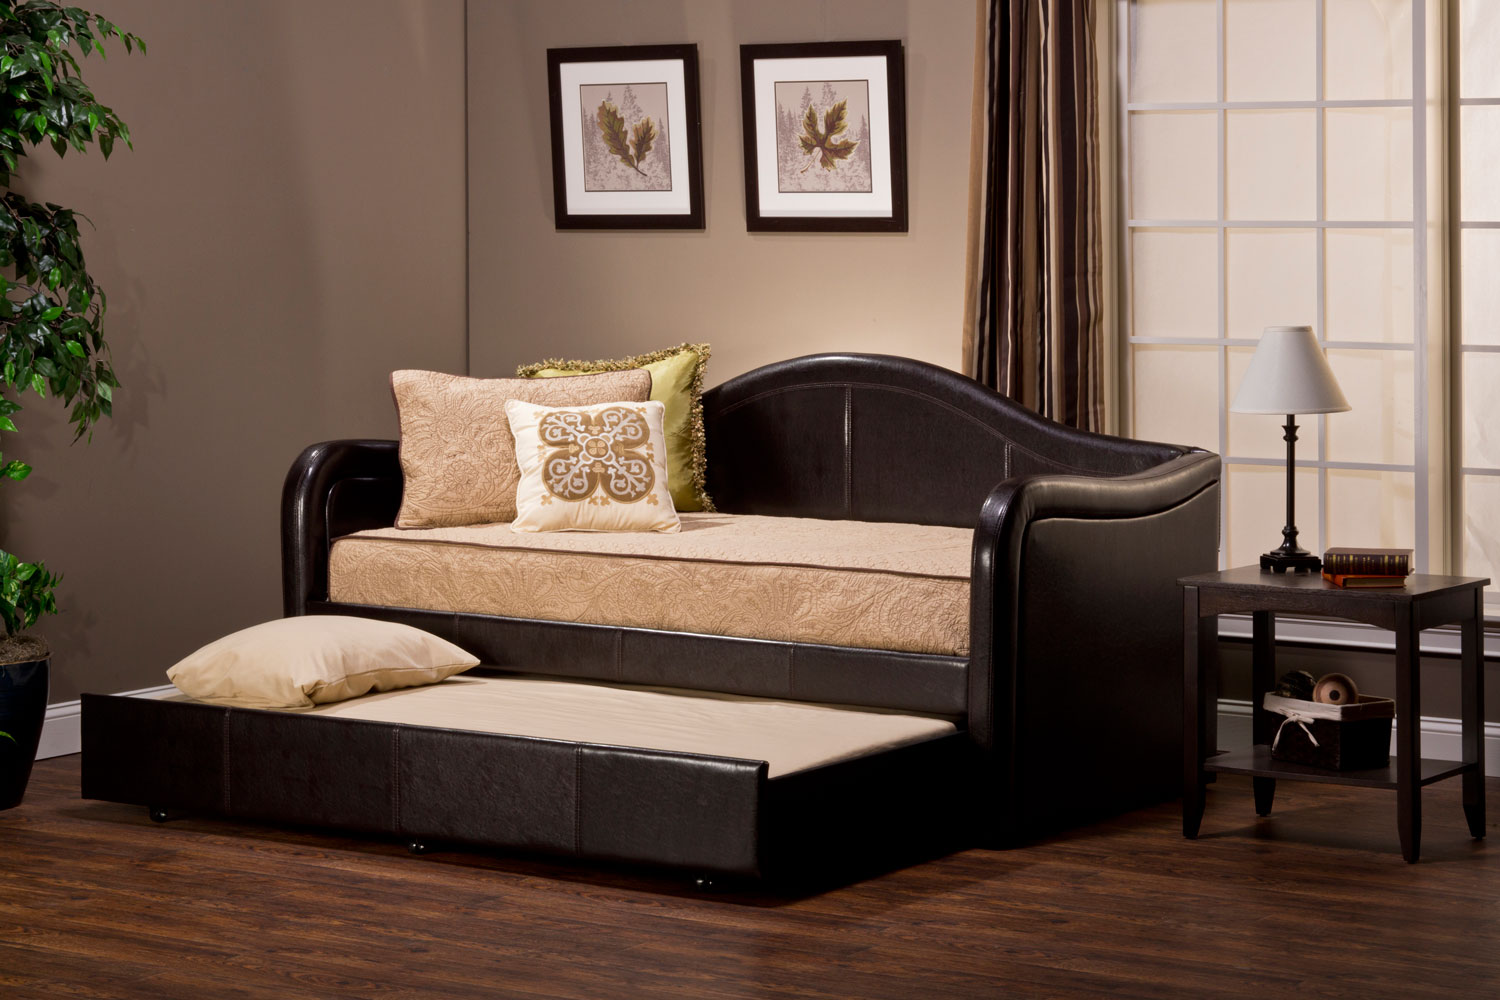 Hillsdale Bedroom Furniture Hillsdale Brenton Daybed With Pull Out Trundle Brown